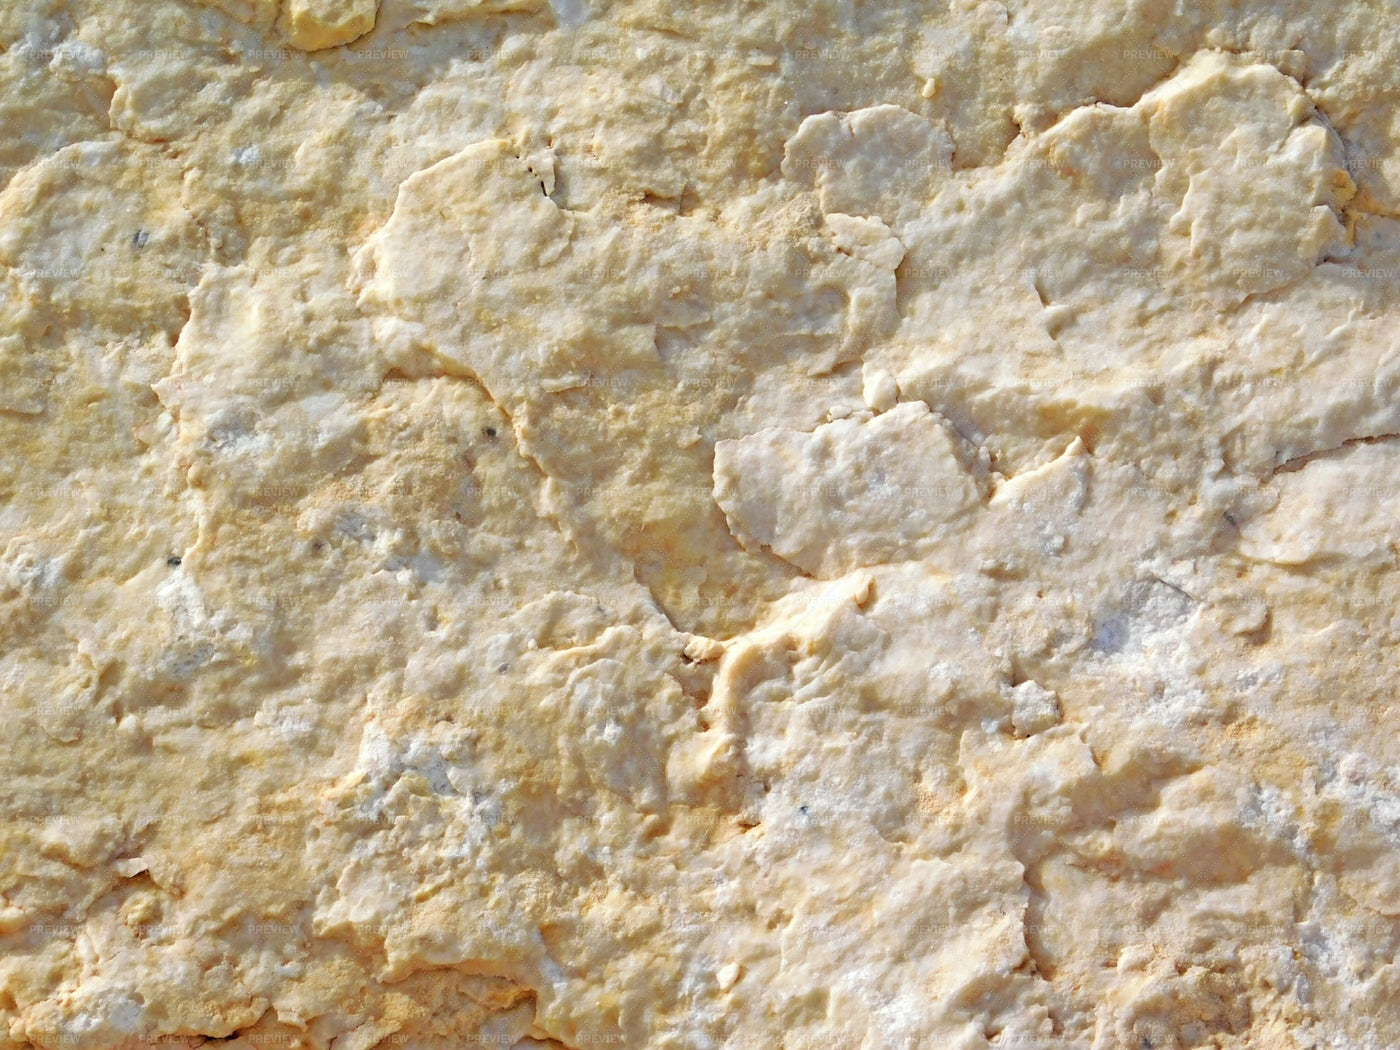 Stone Texture In Marble Field: Stock Photos